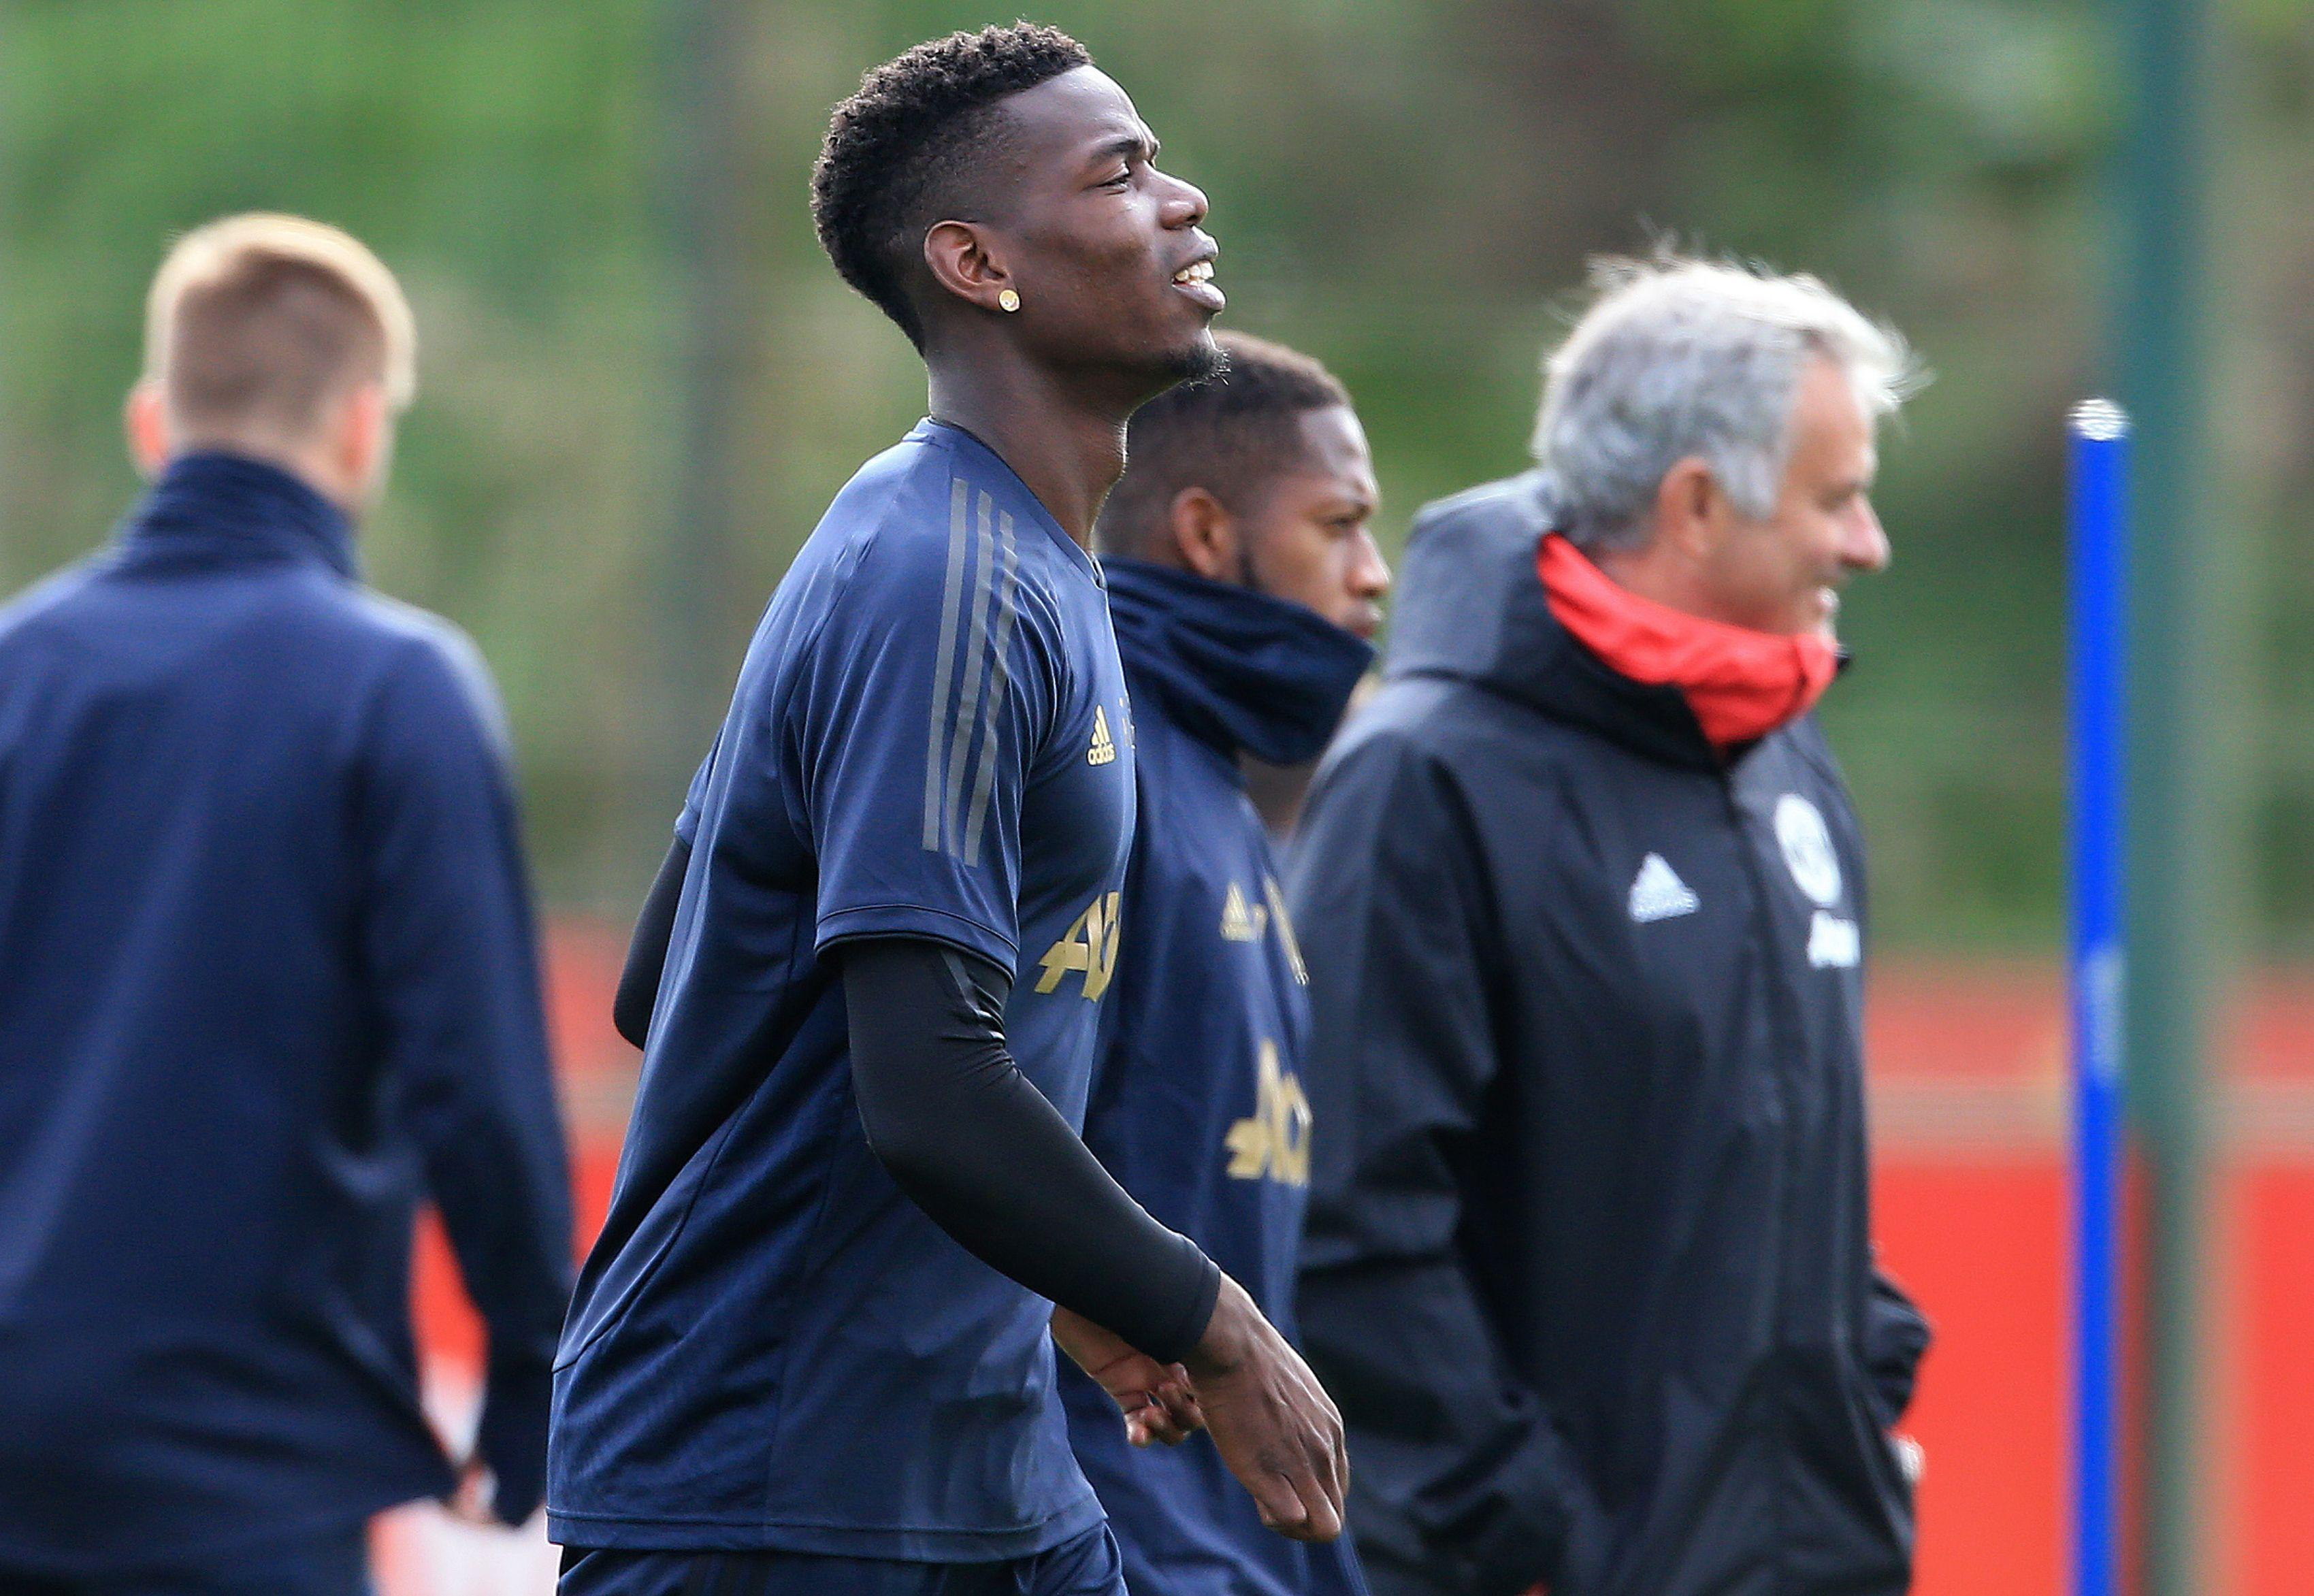 Mourinho's relationship with his Man Utd players, especially Paul Pogba, is at rock bottom